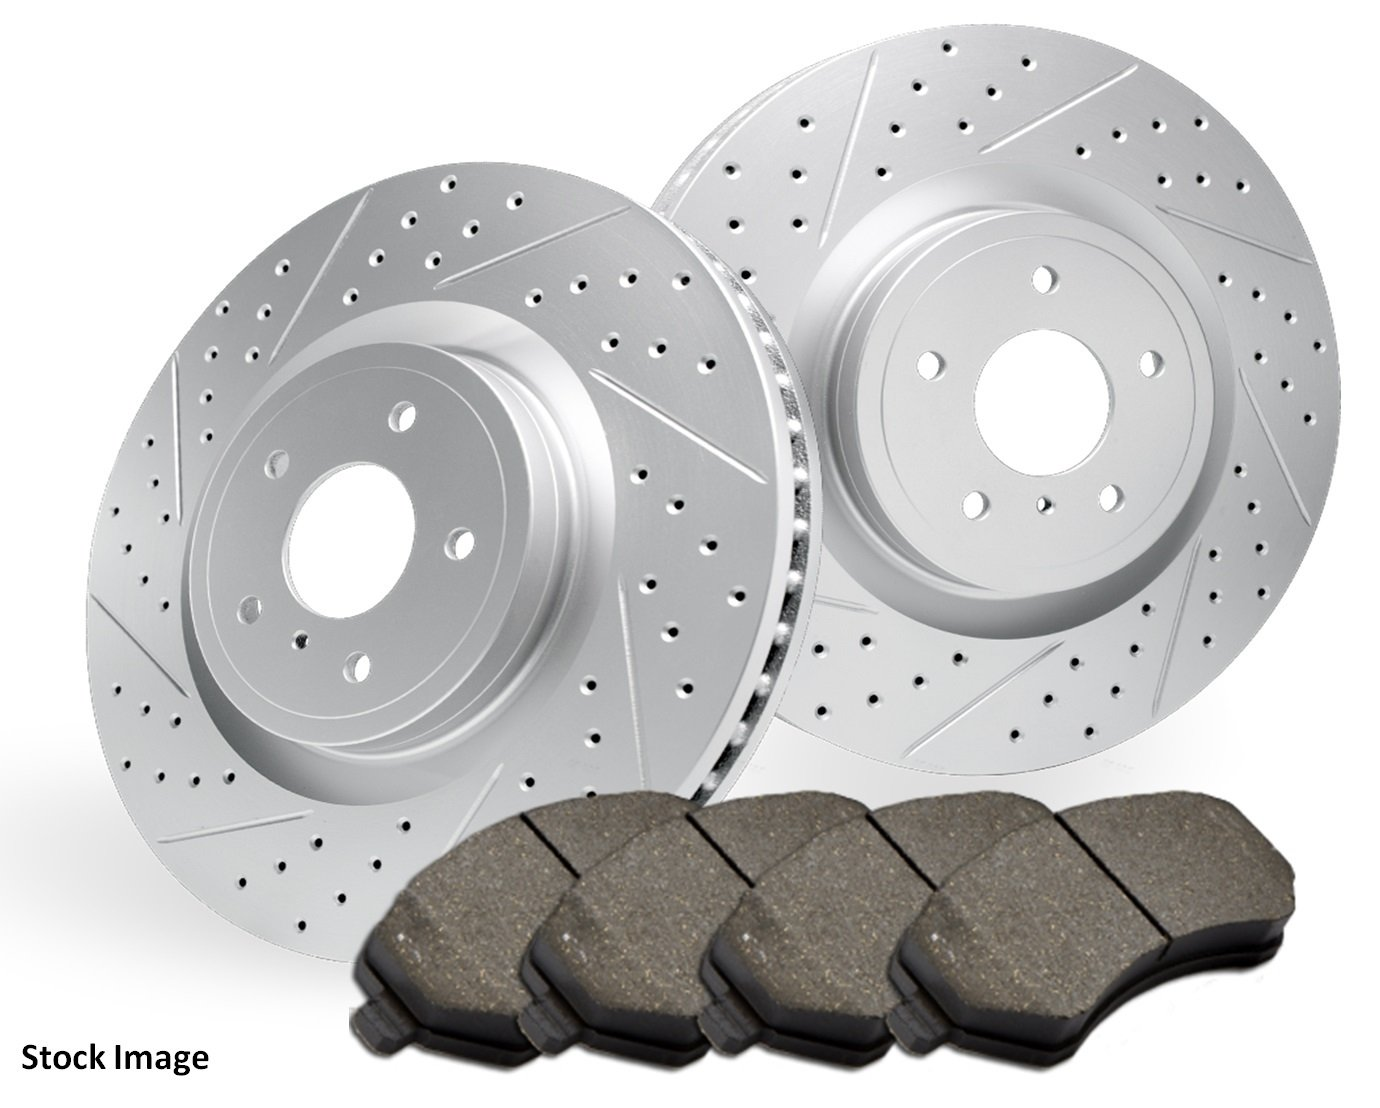 2015 For Jeep Cherokee Rear Cross Drilled Slotted and Anti Rust Coated Disc Brake Rotors and Ceramic Brake Pads (Note: 278mm; w/Brake Code BRF; Exc HD Brakes) Proforce